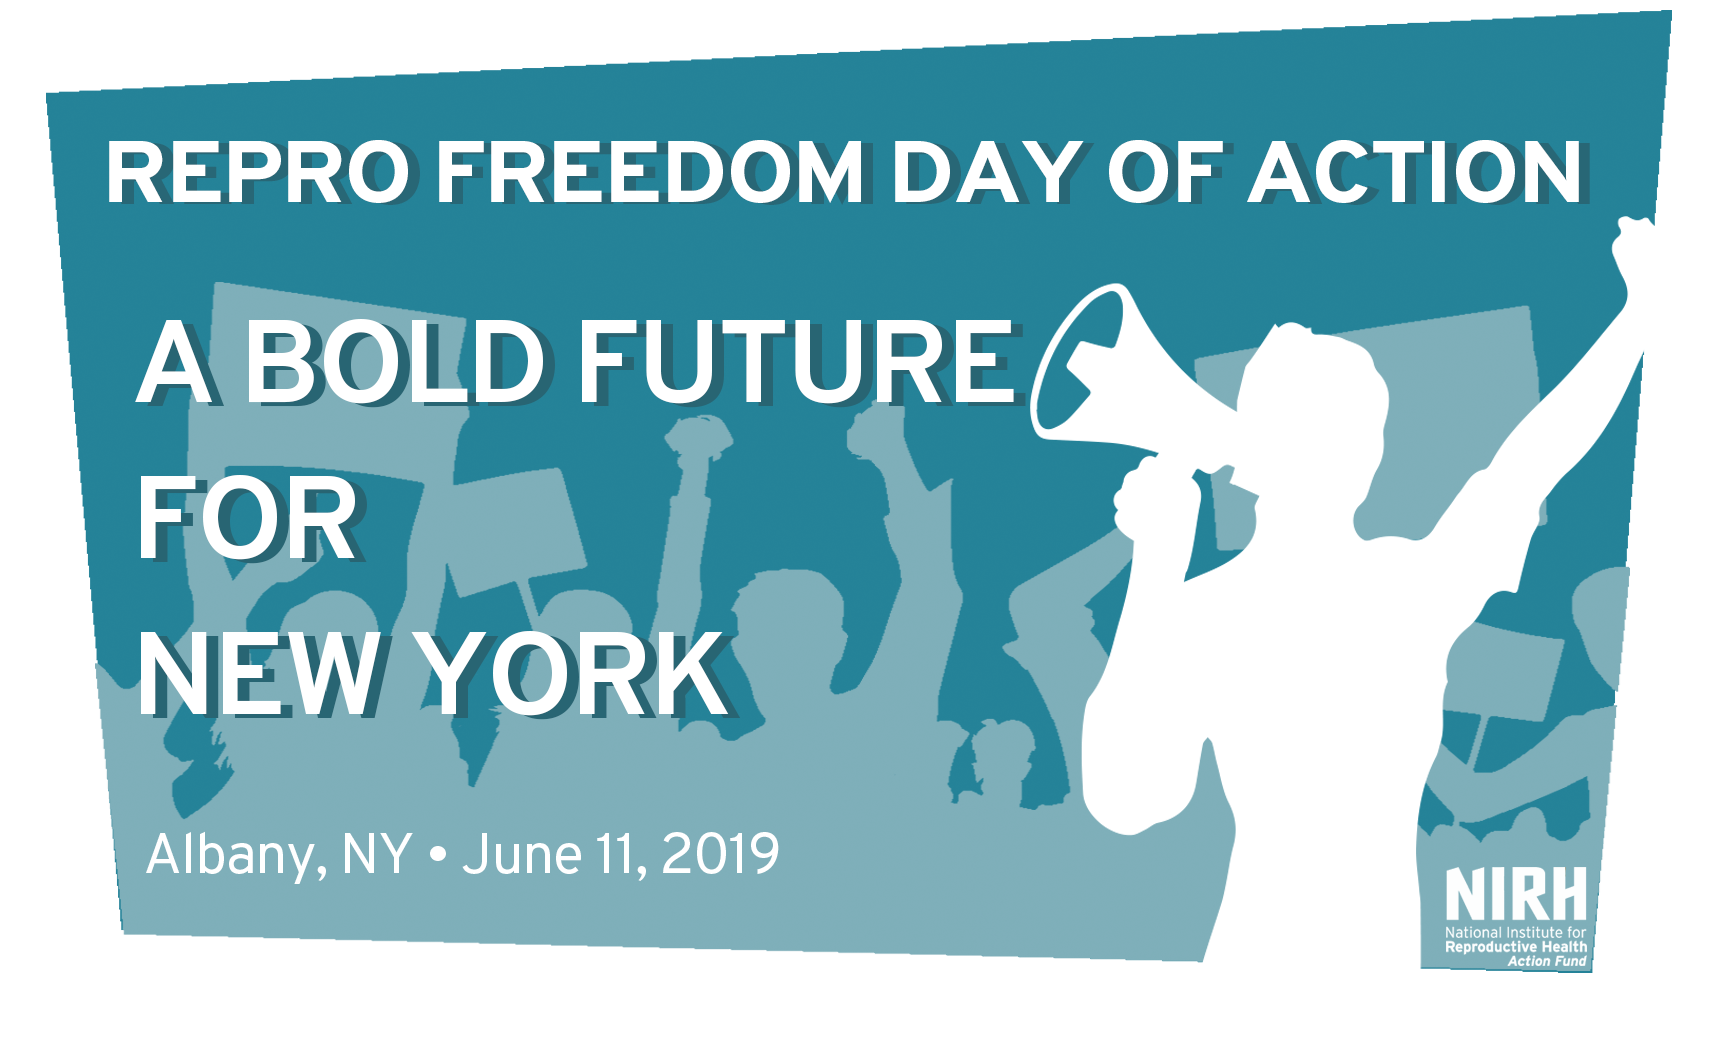 New York Repro Freedom Day of Action